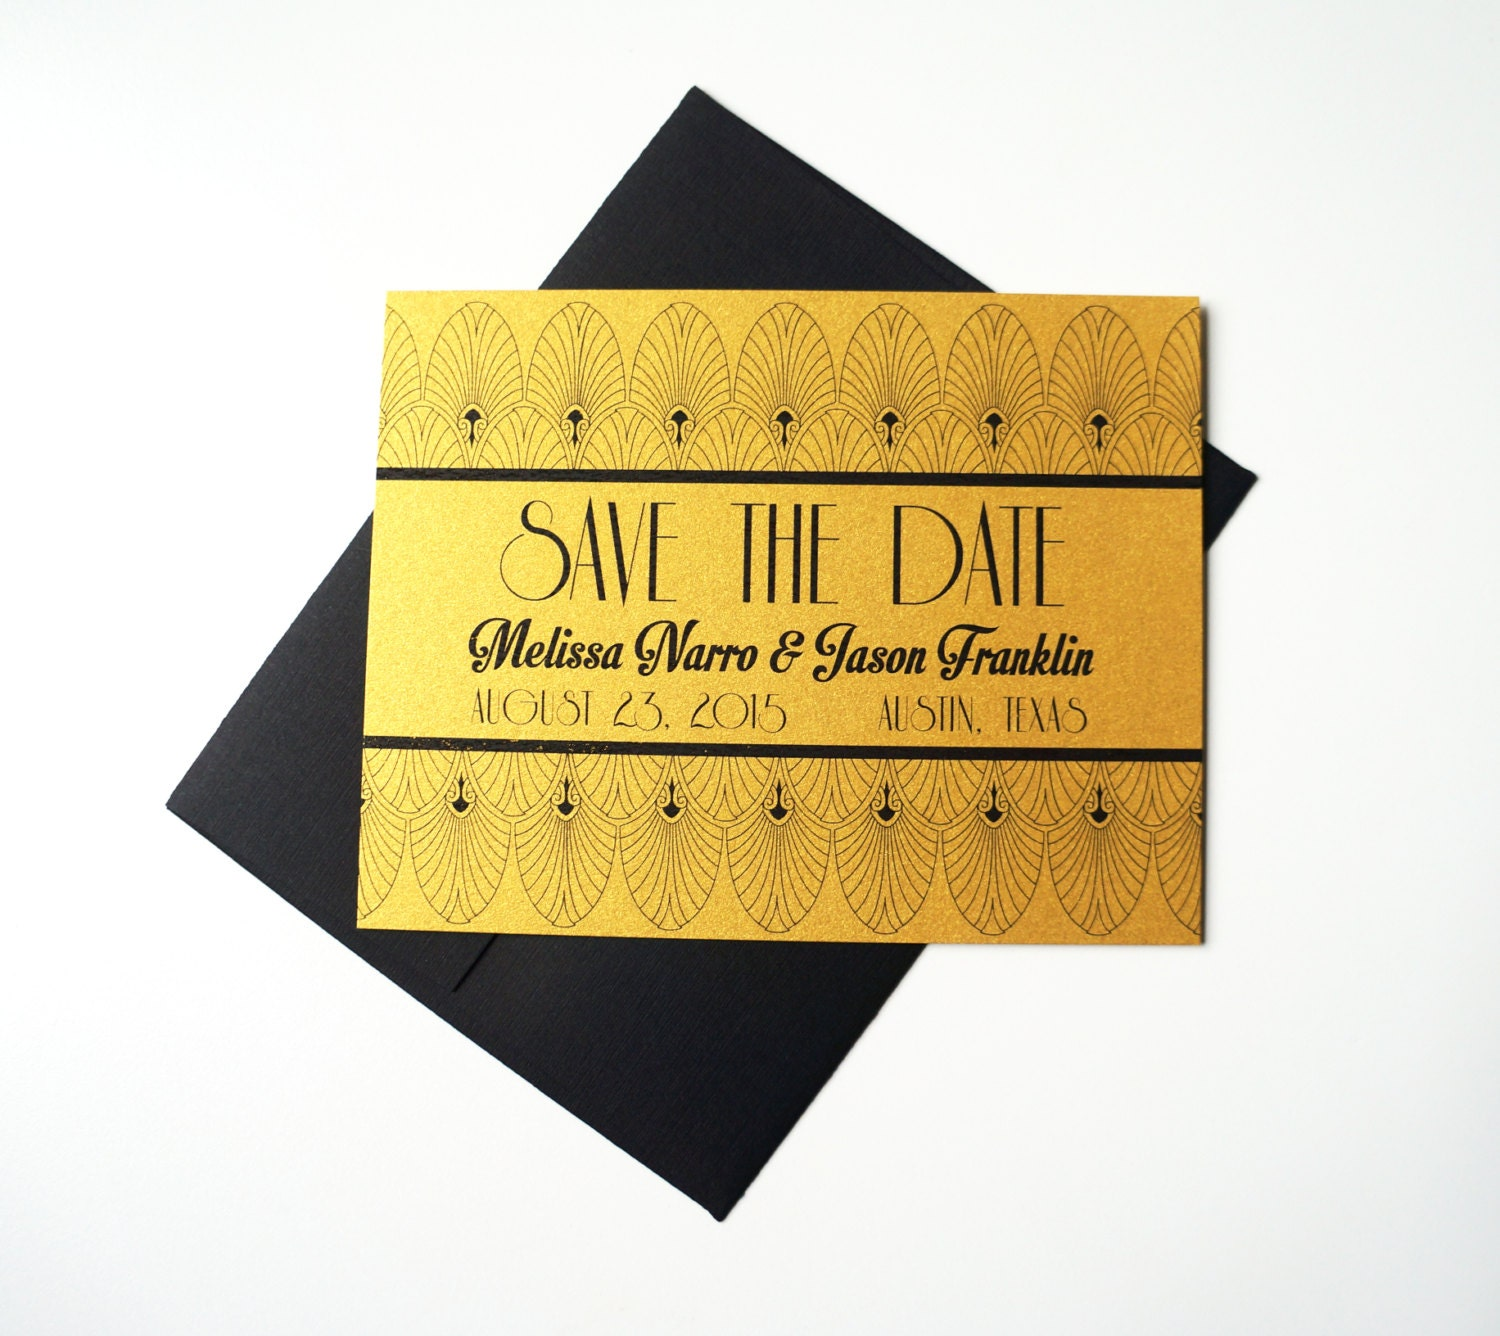 save the date old hollywood art deco metallic gold card. Black Bedroom Furniture Sets. Home Design Ideas